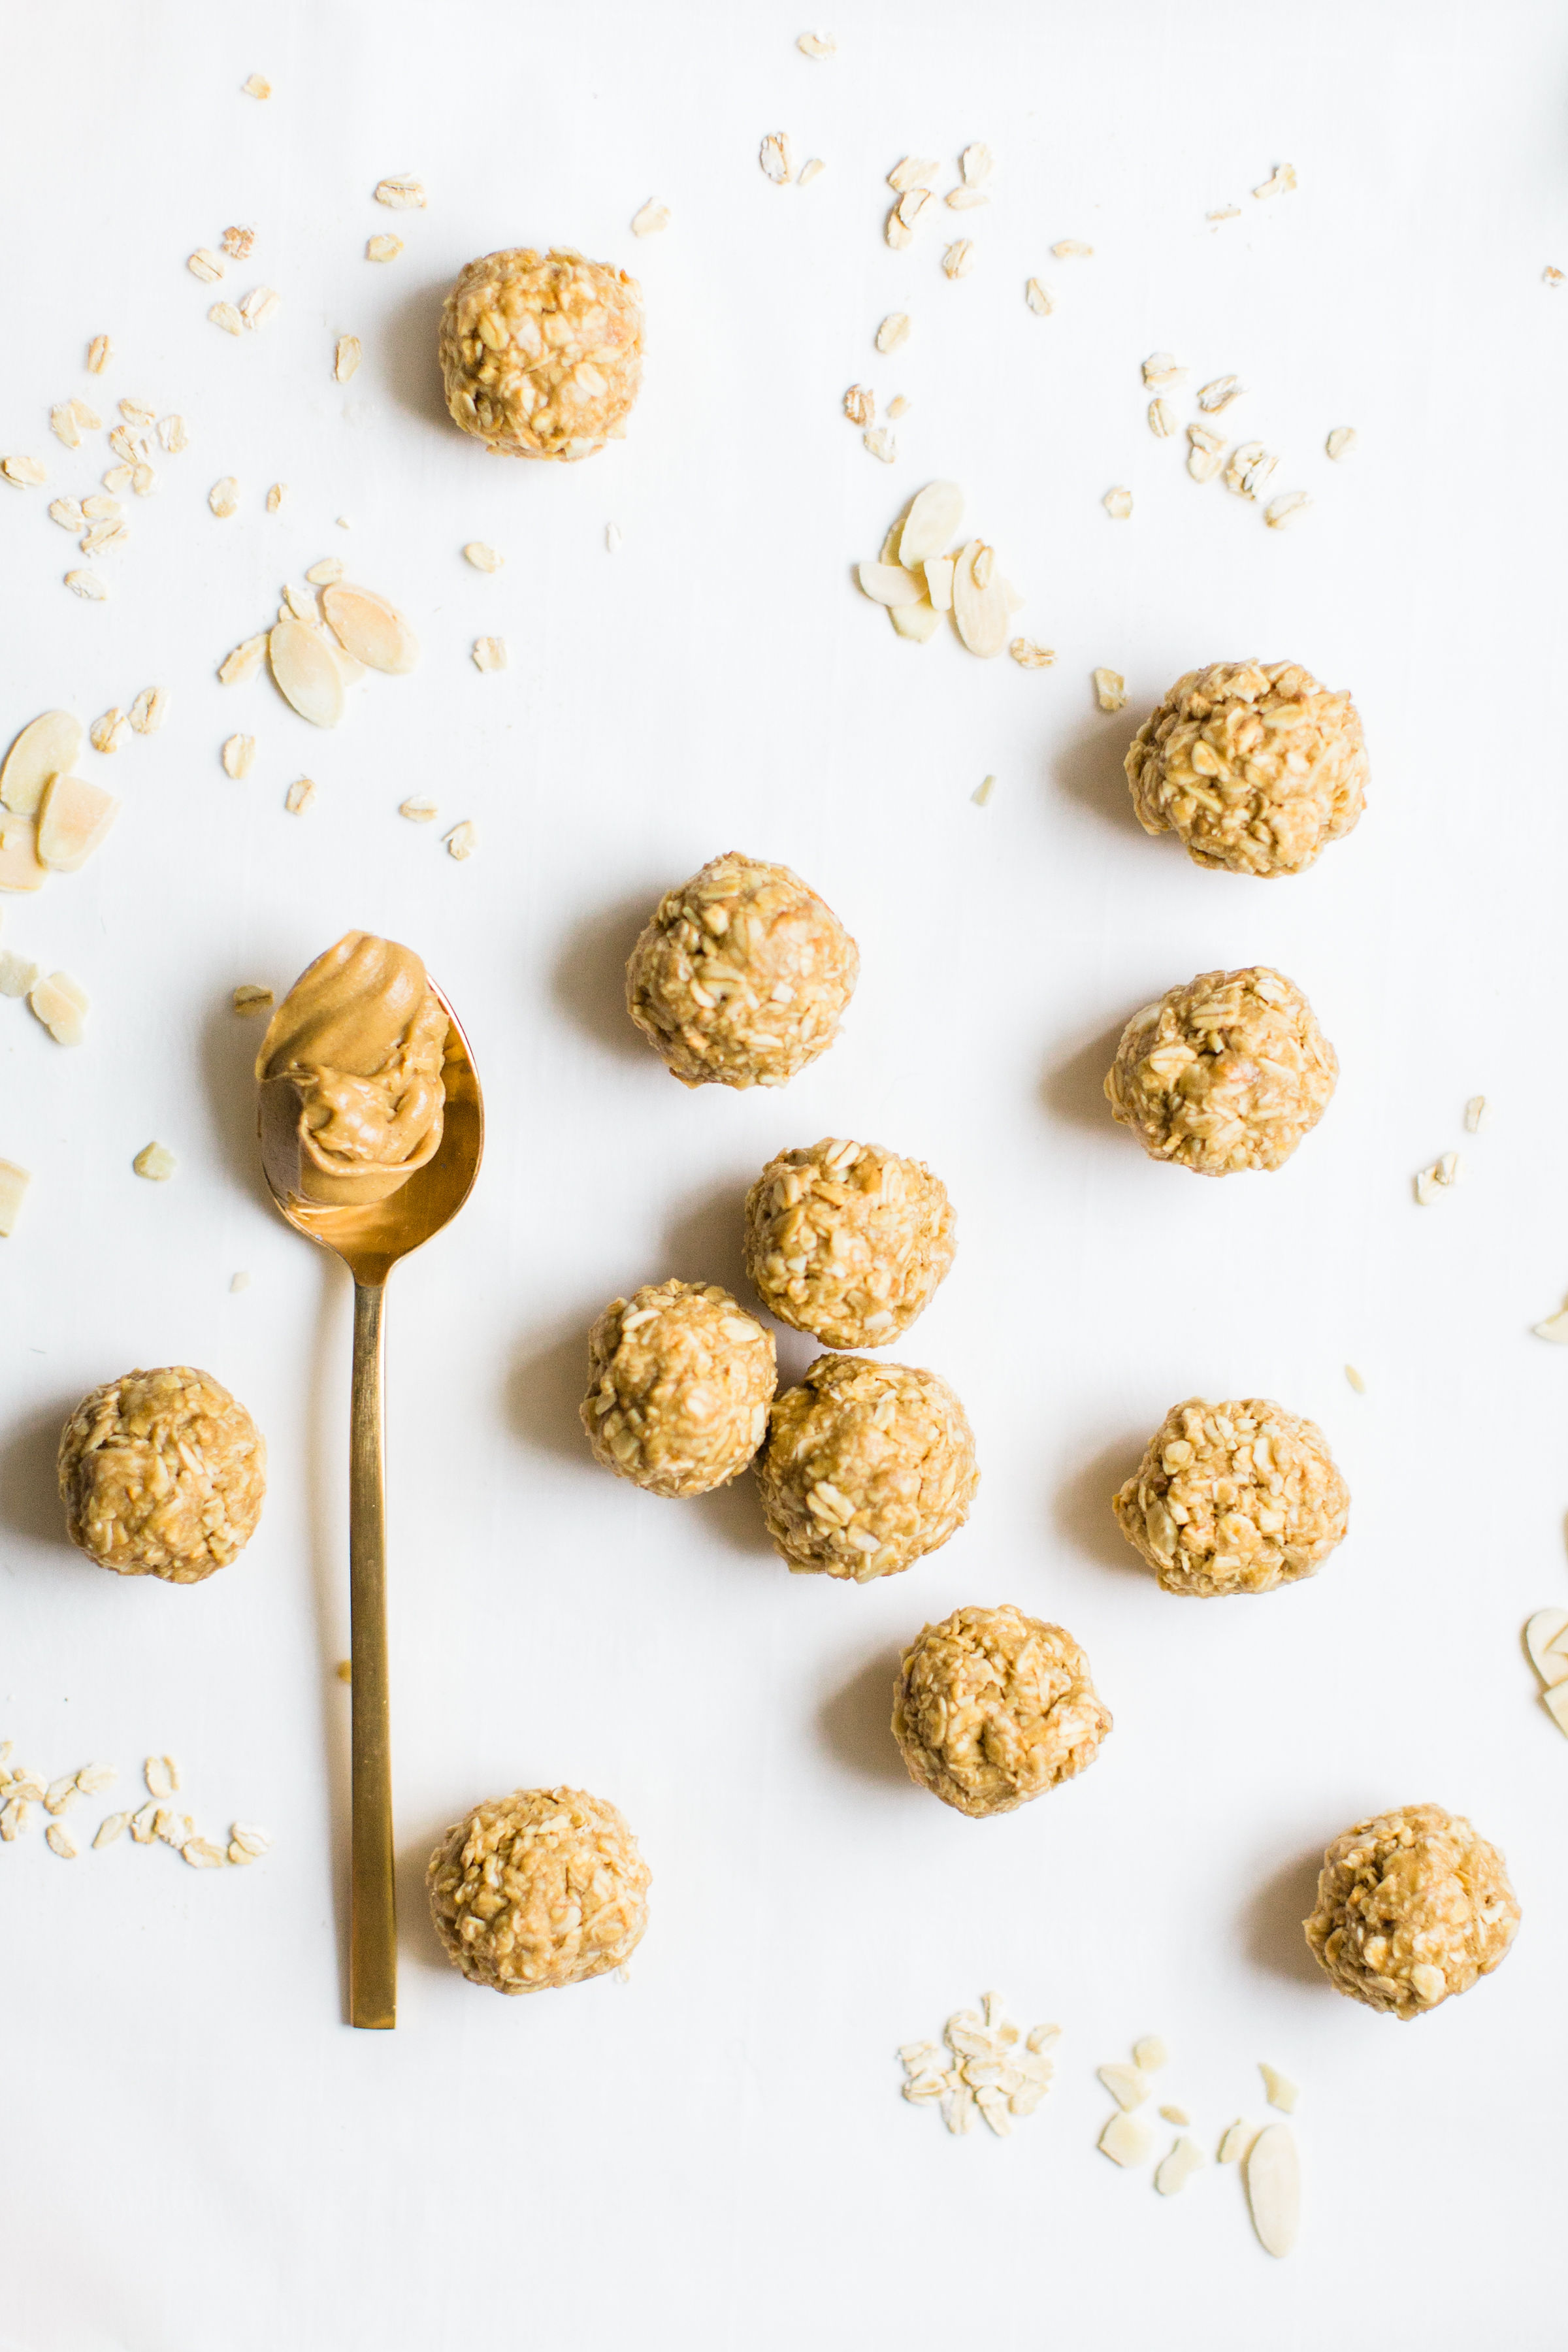 These no-bake energy bites are easy to make, the perfect combination of sweet and salty, have plenty of added protein thanks to the peanut butter, and kids absolutely love them because they're basically delicious no-bake cookies! Click through for the recipe. #snack #energybites #nobake  #healthysnack #kidsrecipe #kidssnack | glitterinc.com | @glitterinc